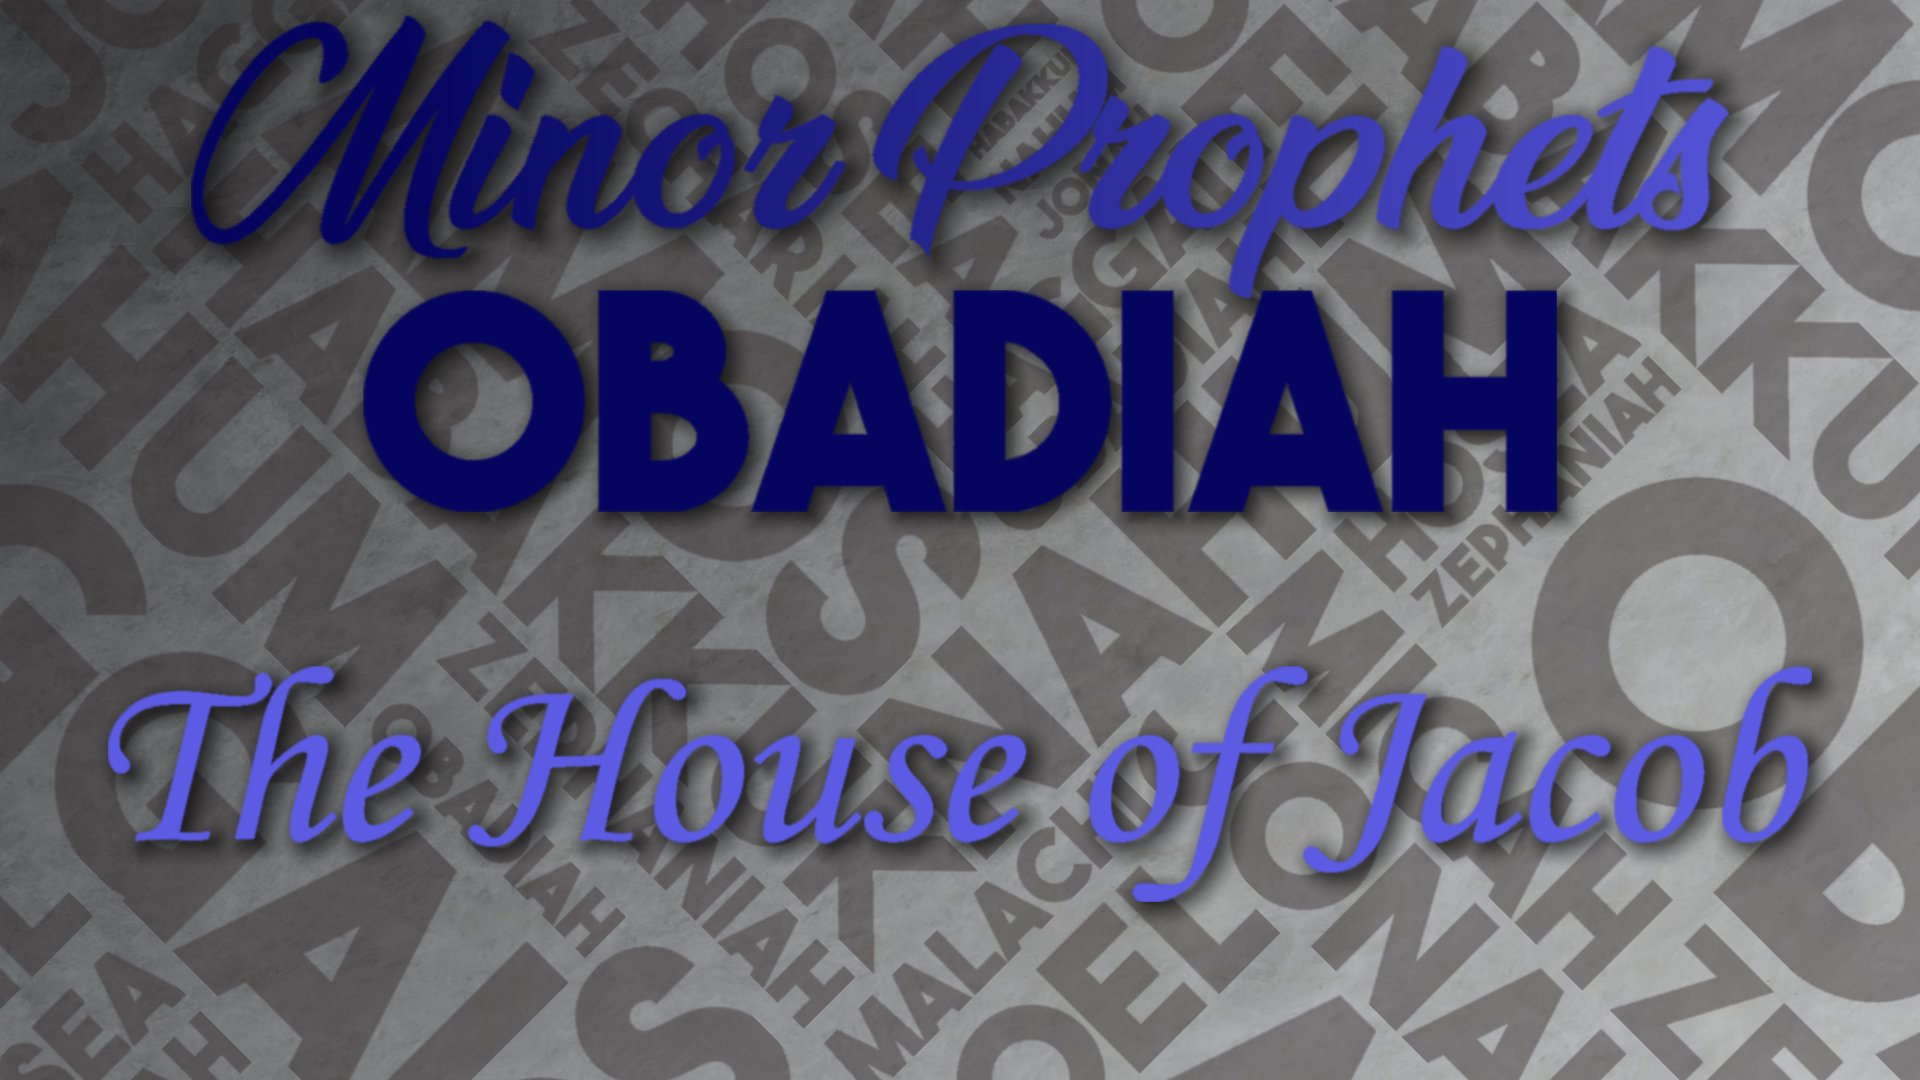 12 The House of Jacob